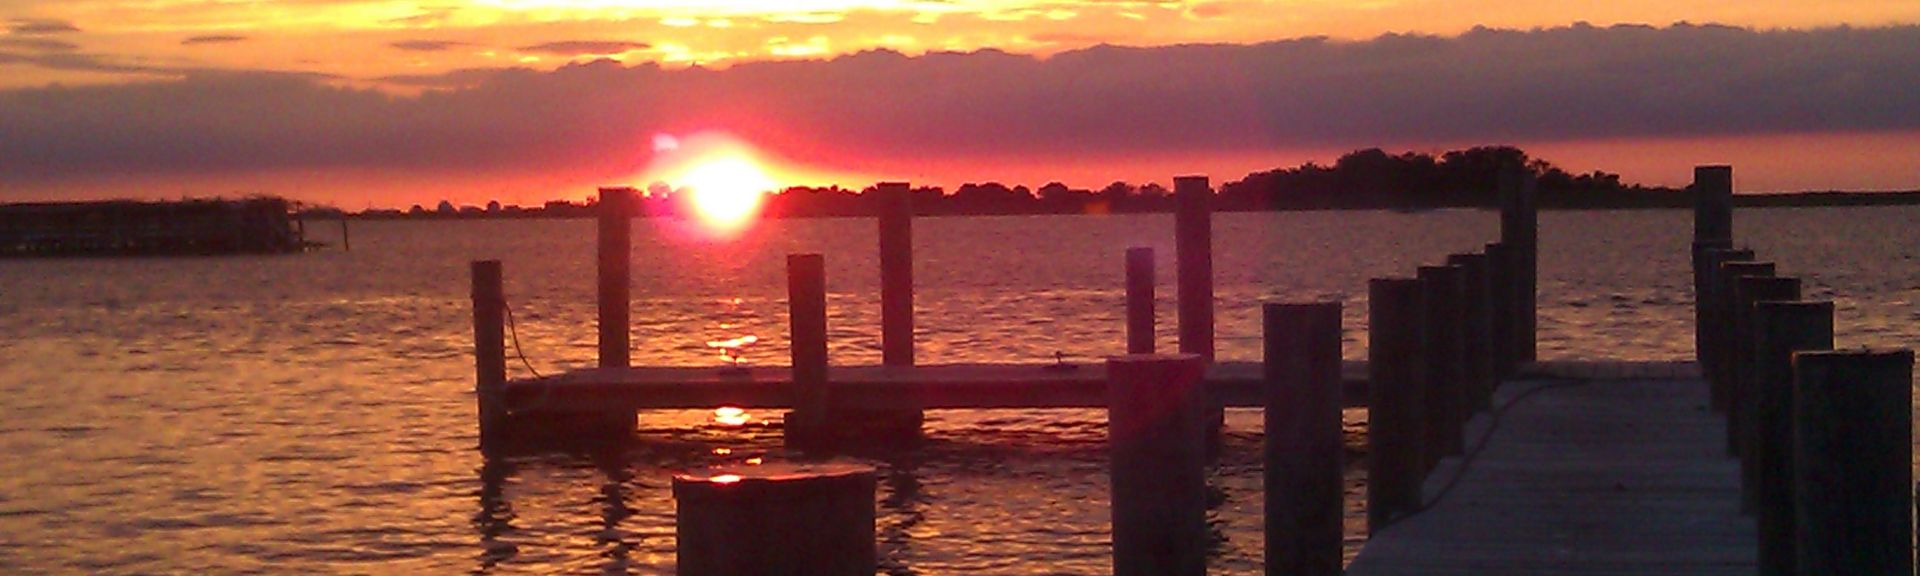 Somers Cove Marina, Crisfield, MD, USA